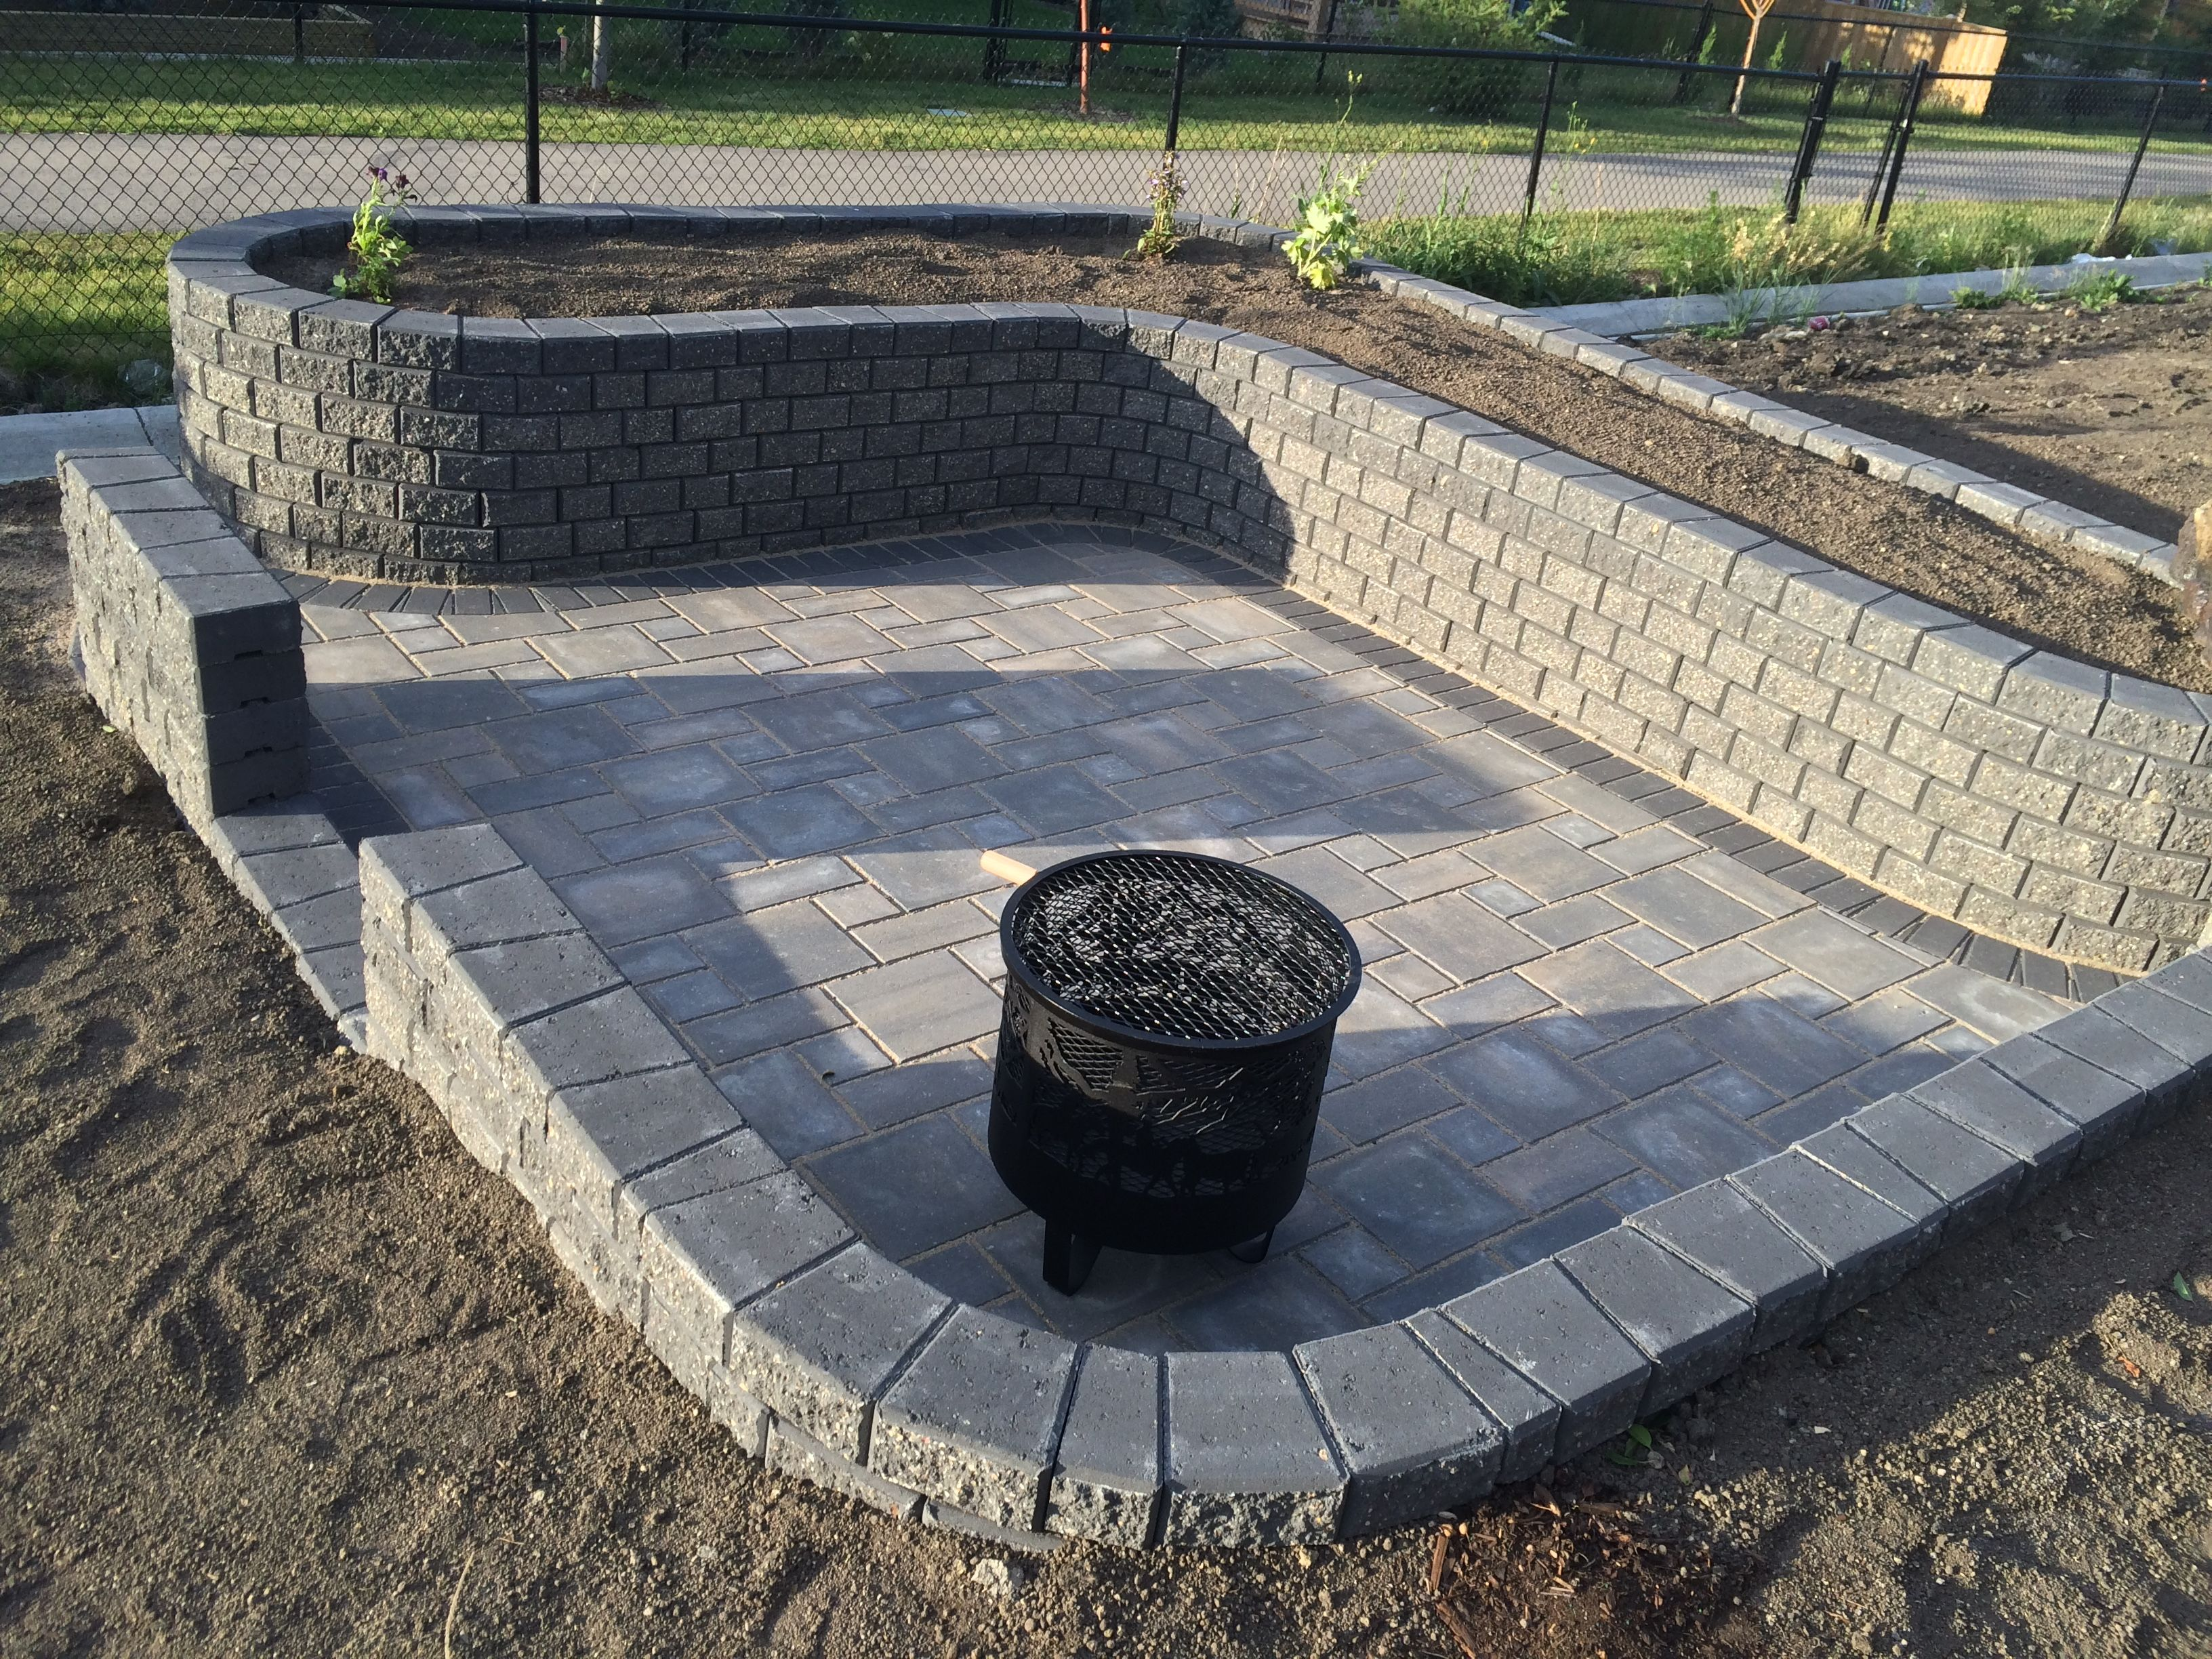 sheltered patio in sierra grey verano pavers with a charcoal